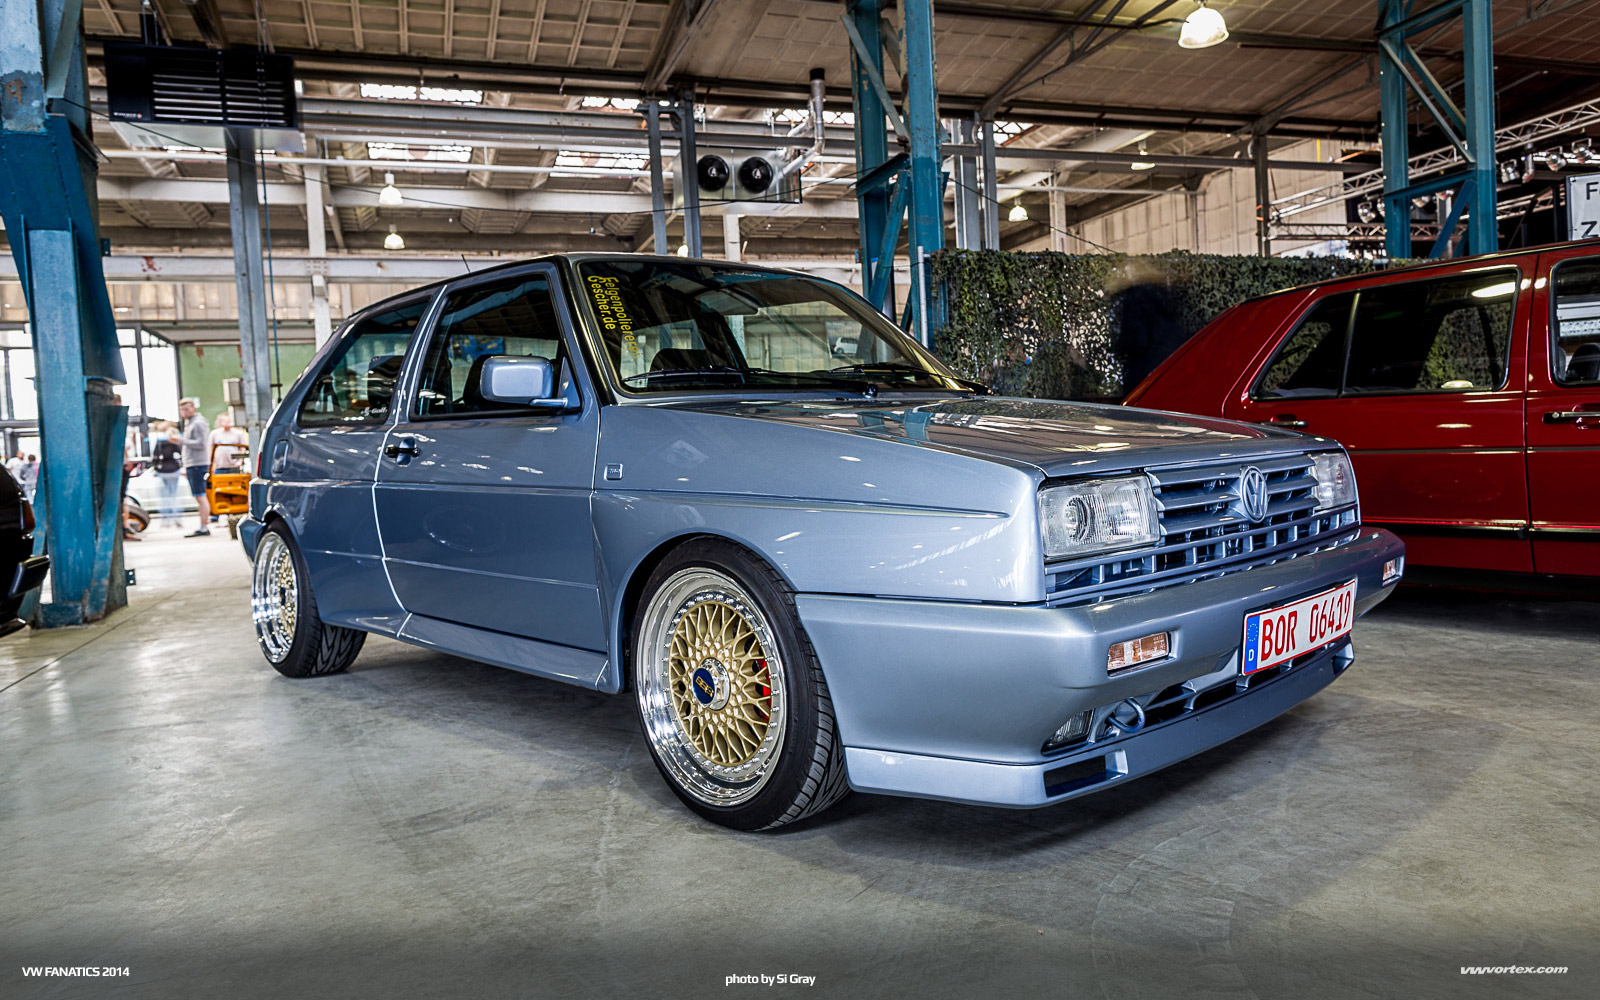 VWFanatics-2014-Si-Gray-366